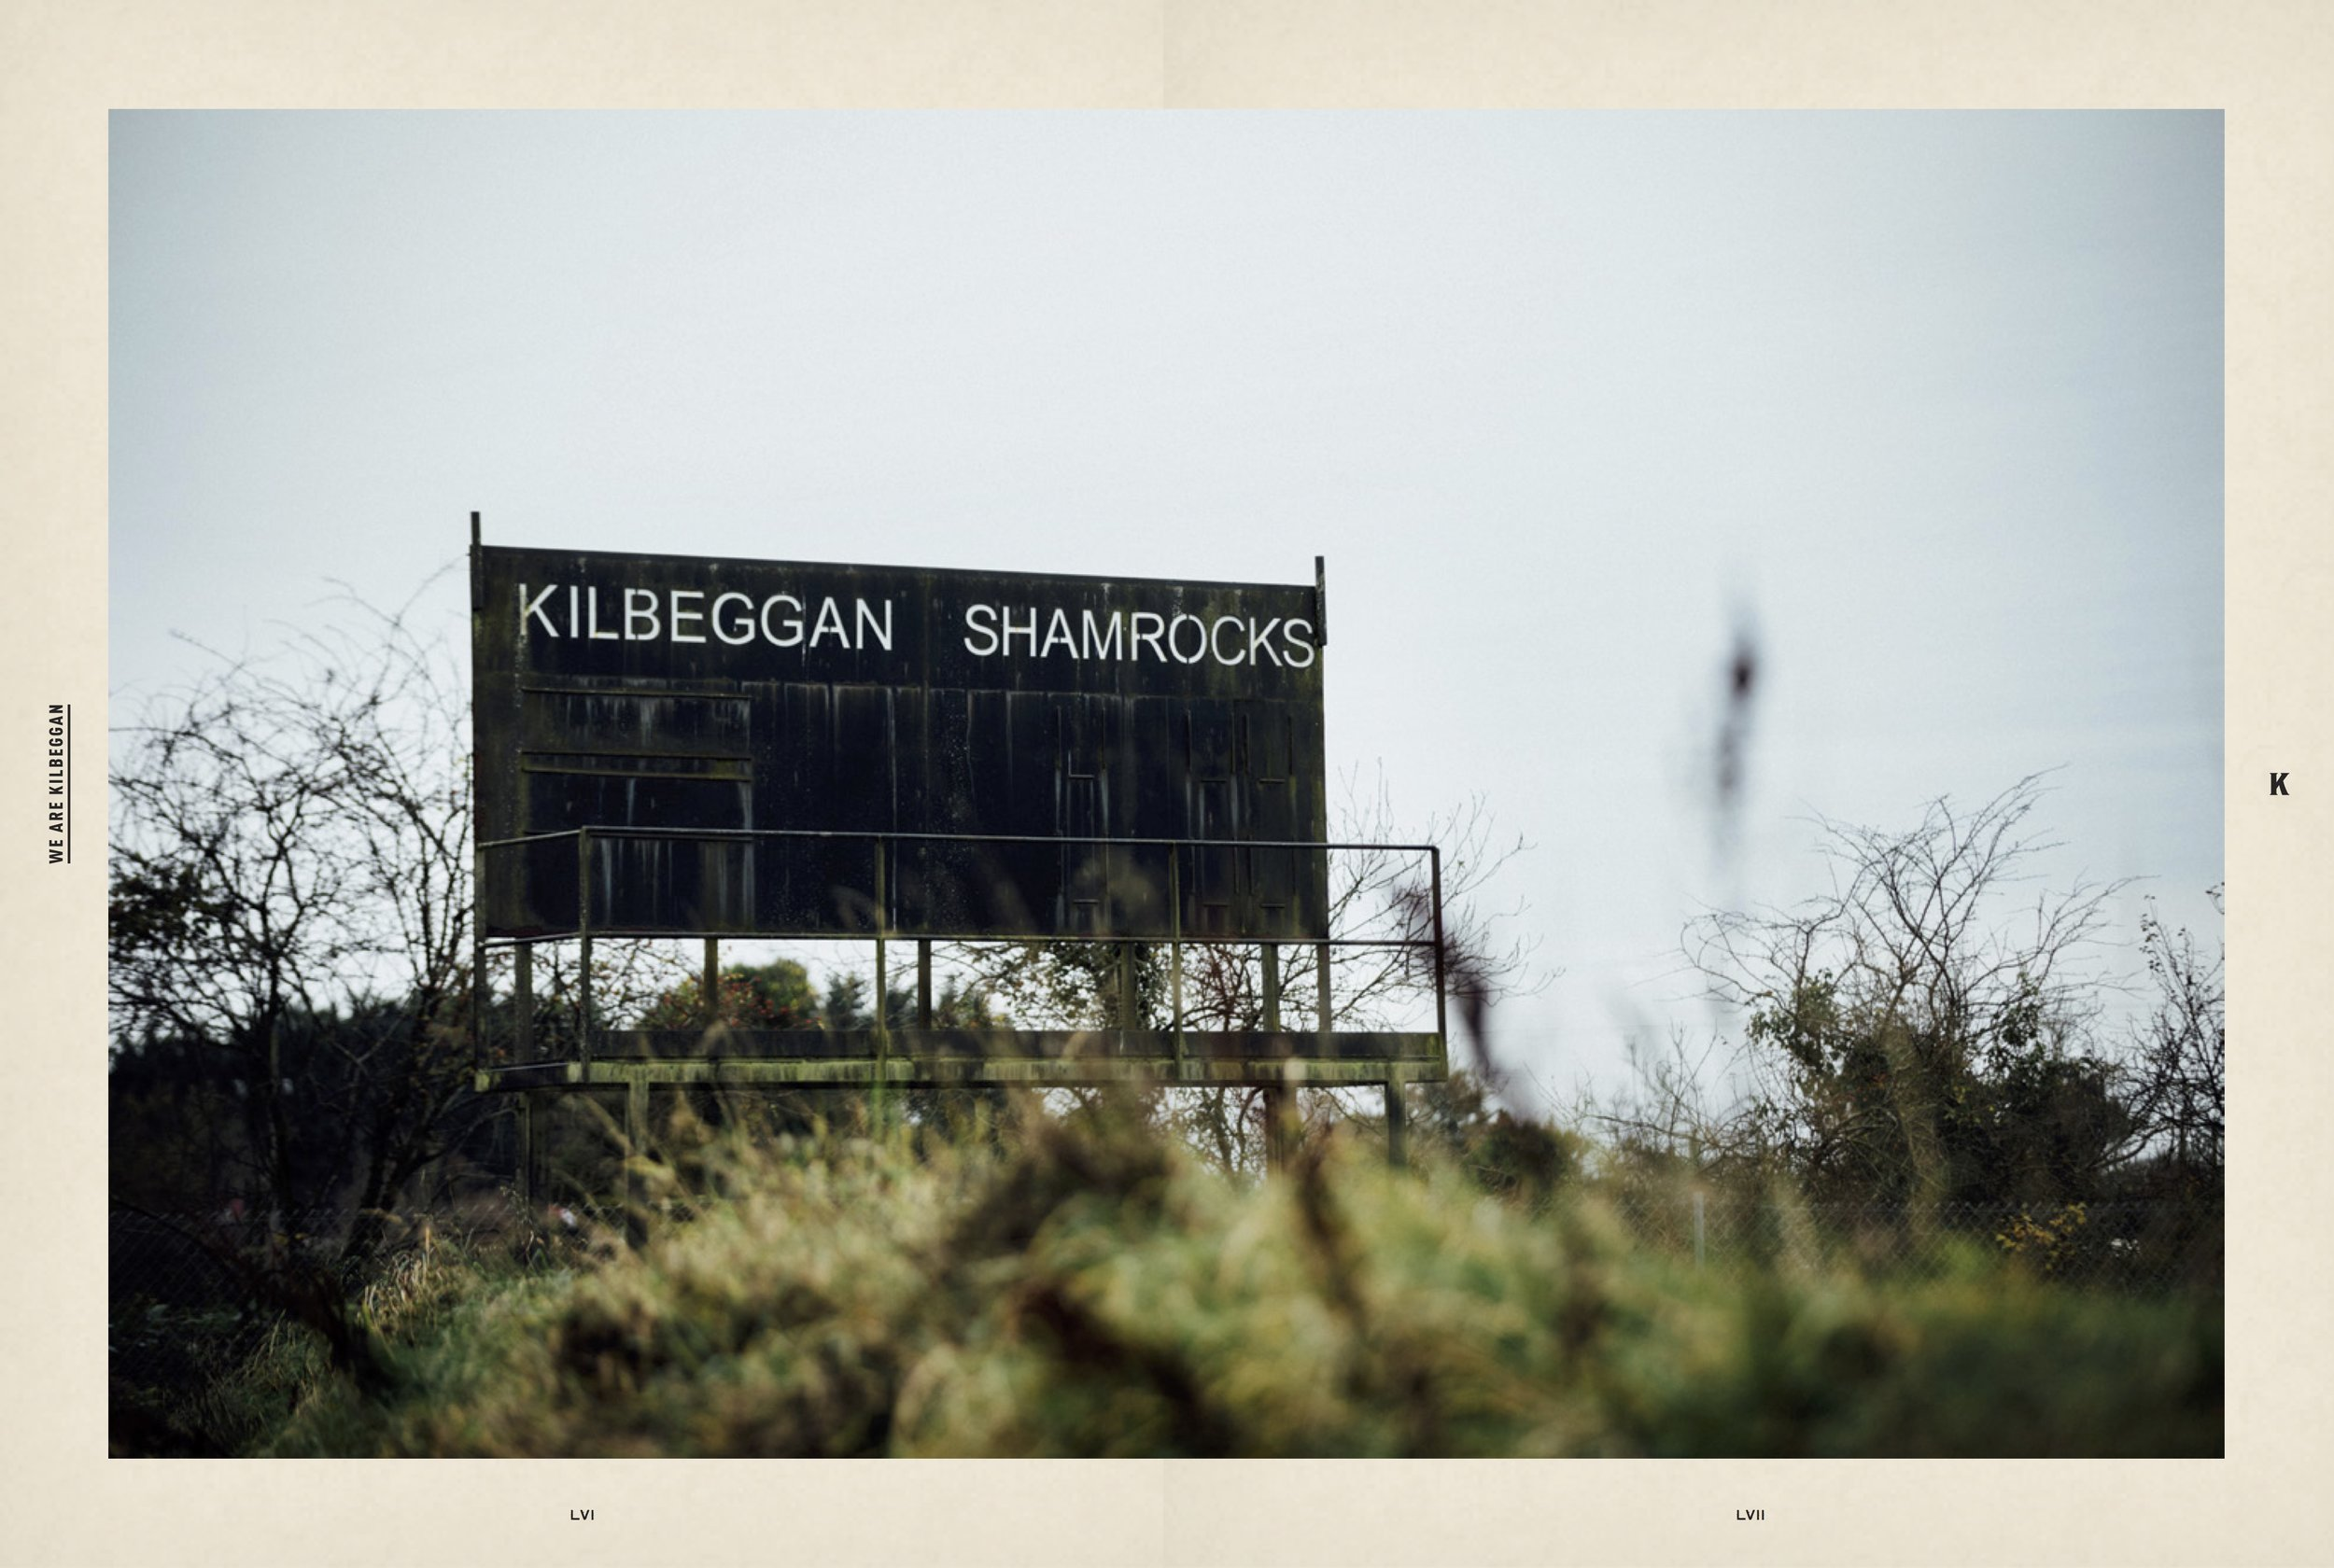 Kilbeggan_BrandBook_ZINE_DIGITAL.07.14.17 (dragged) 13.jpeg